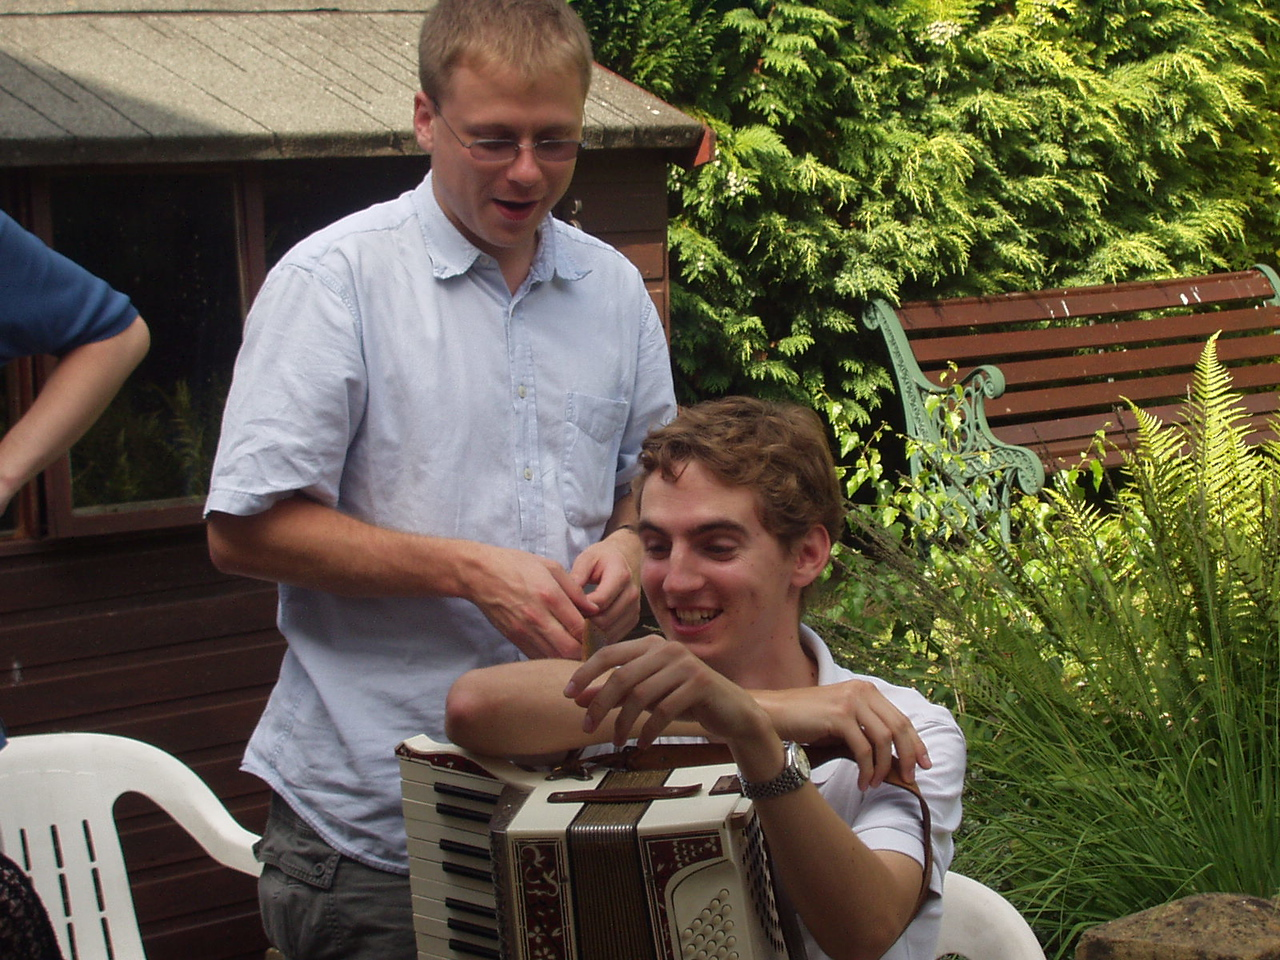 Passing the accordion